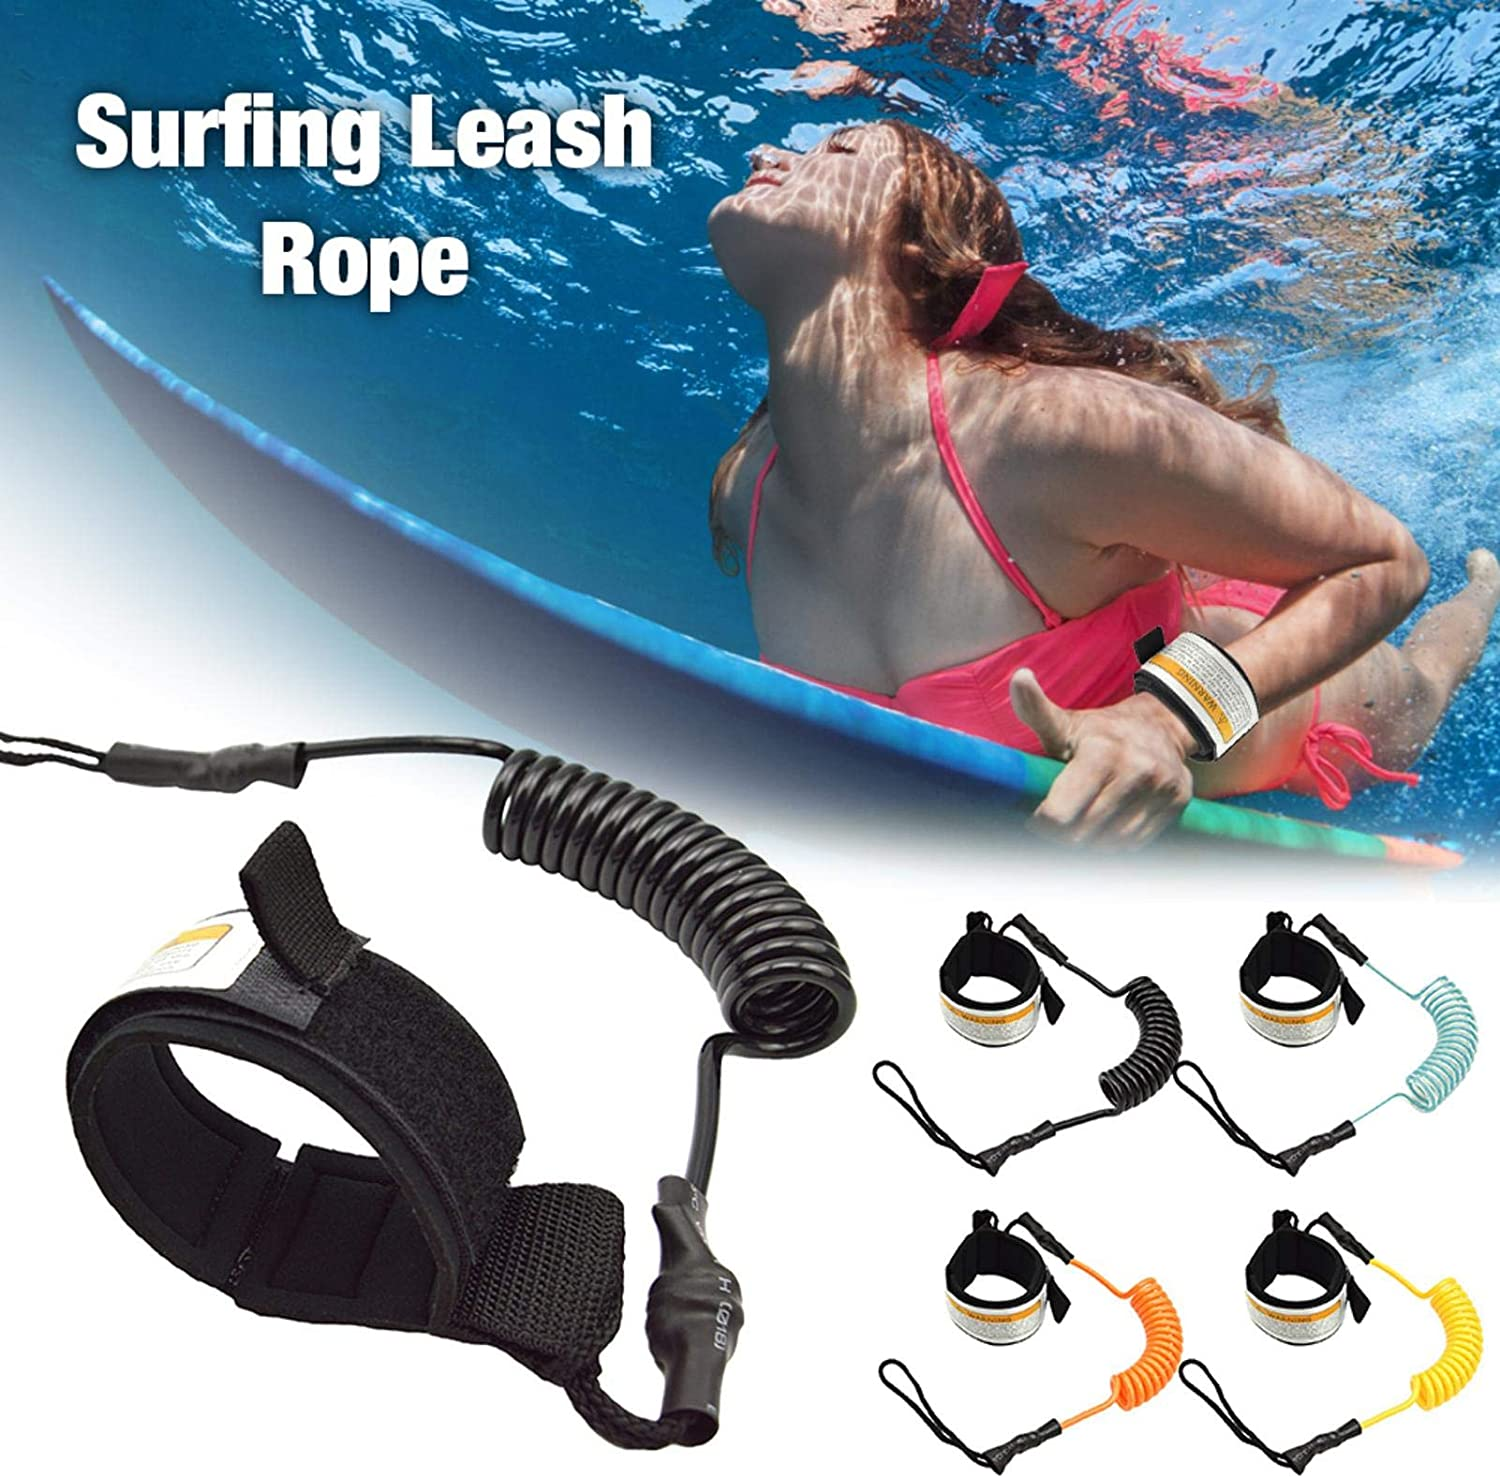 GoldCistern 1.6M Surfing Leash Rope,Surfboard Paddle Strap Kit Leash Wrist Ankle Safety Swivel Leash Child Anti-Lost Tool,Surfboard Leash Surf Wrist Leash Leg Rope